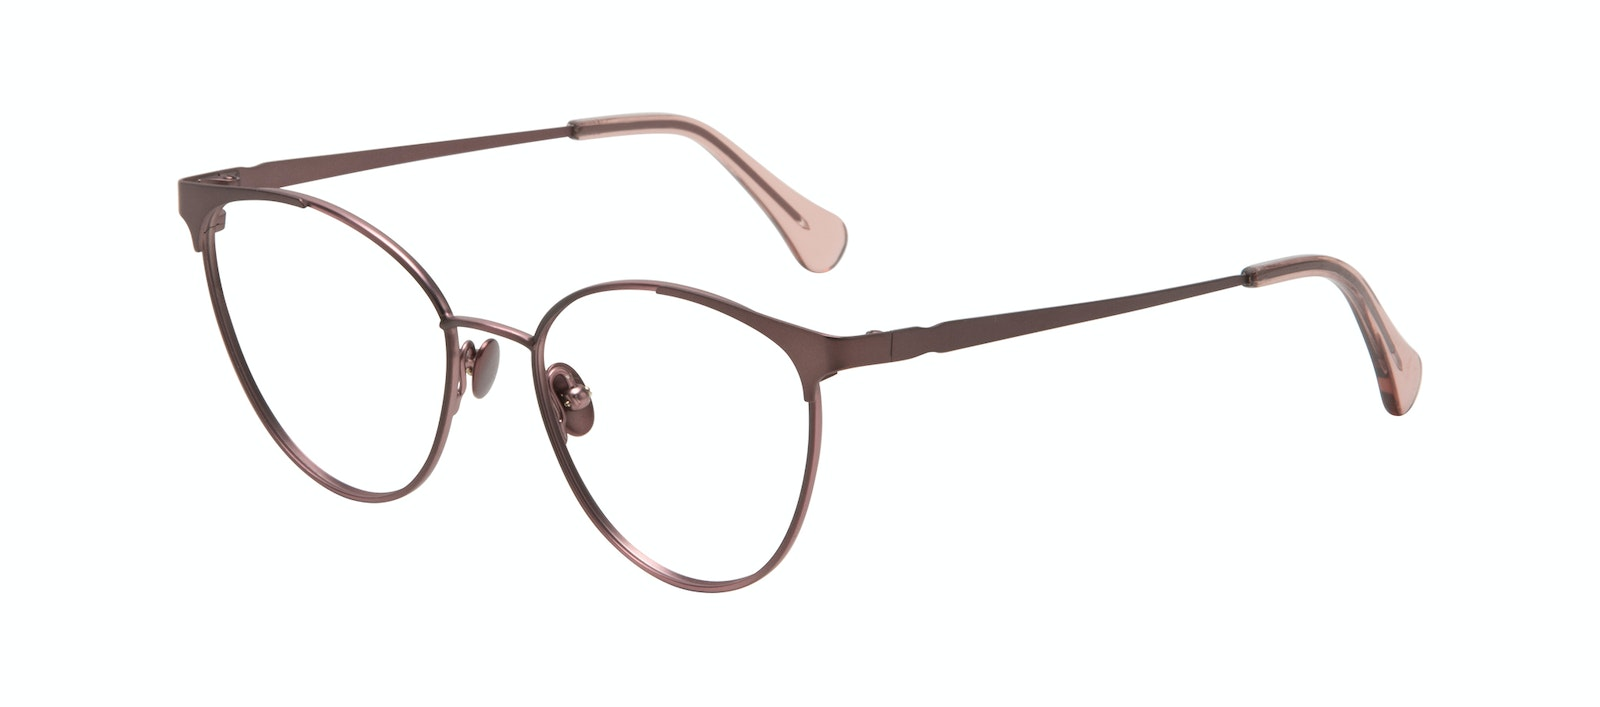 Affordable Fashion Glasses Cat Eye Eyeglasses Women Edgy Pink Terra Tilt